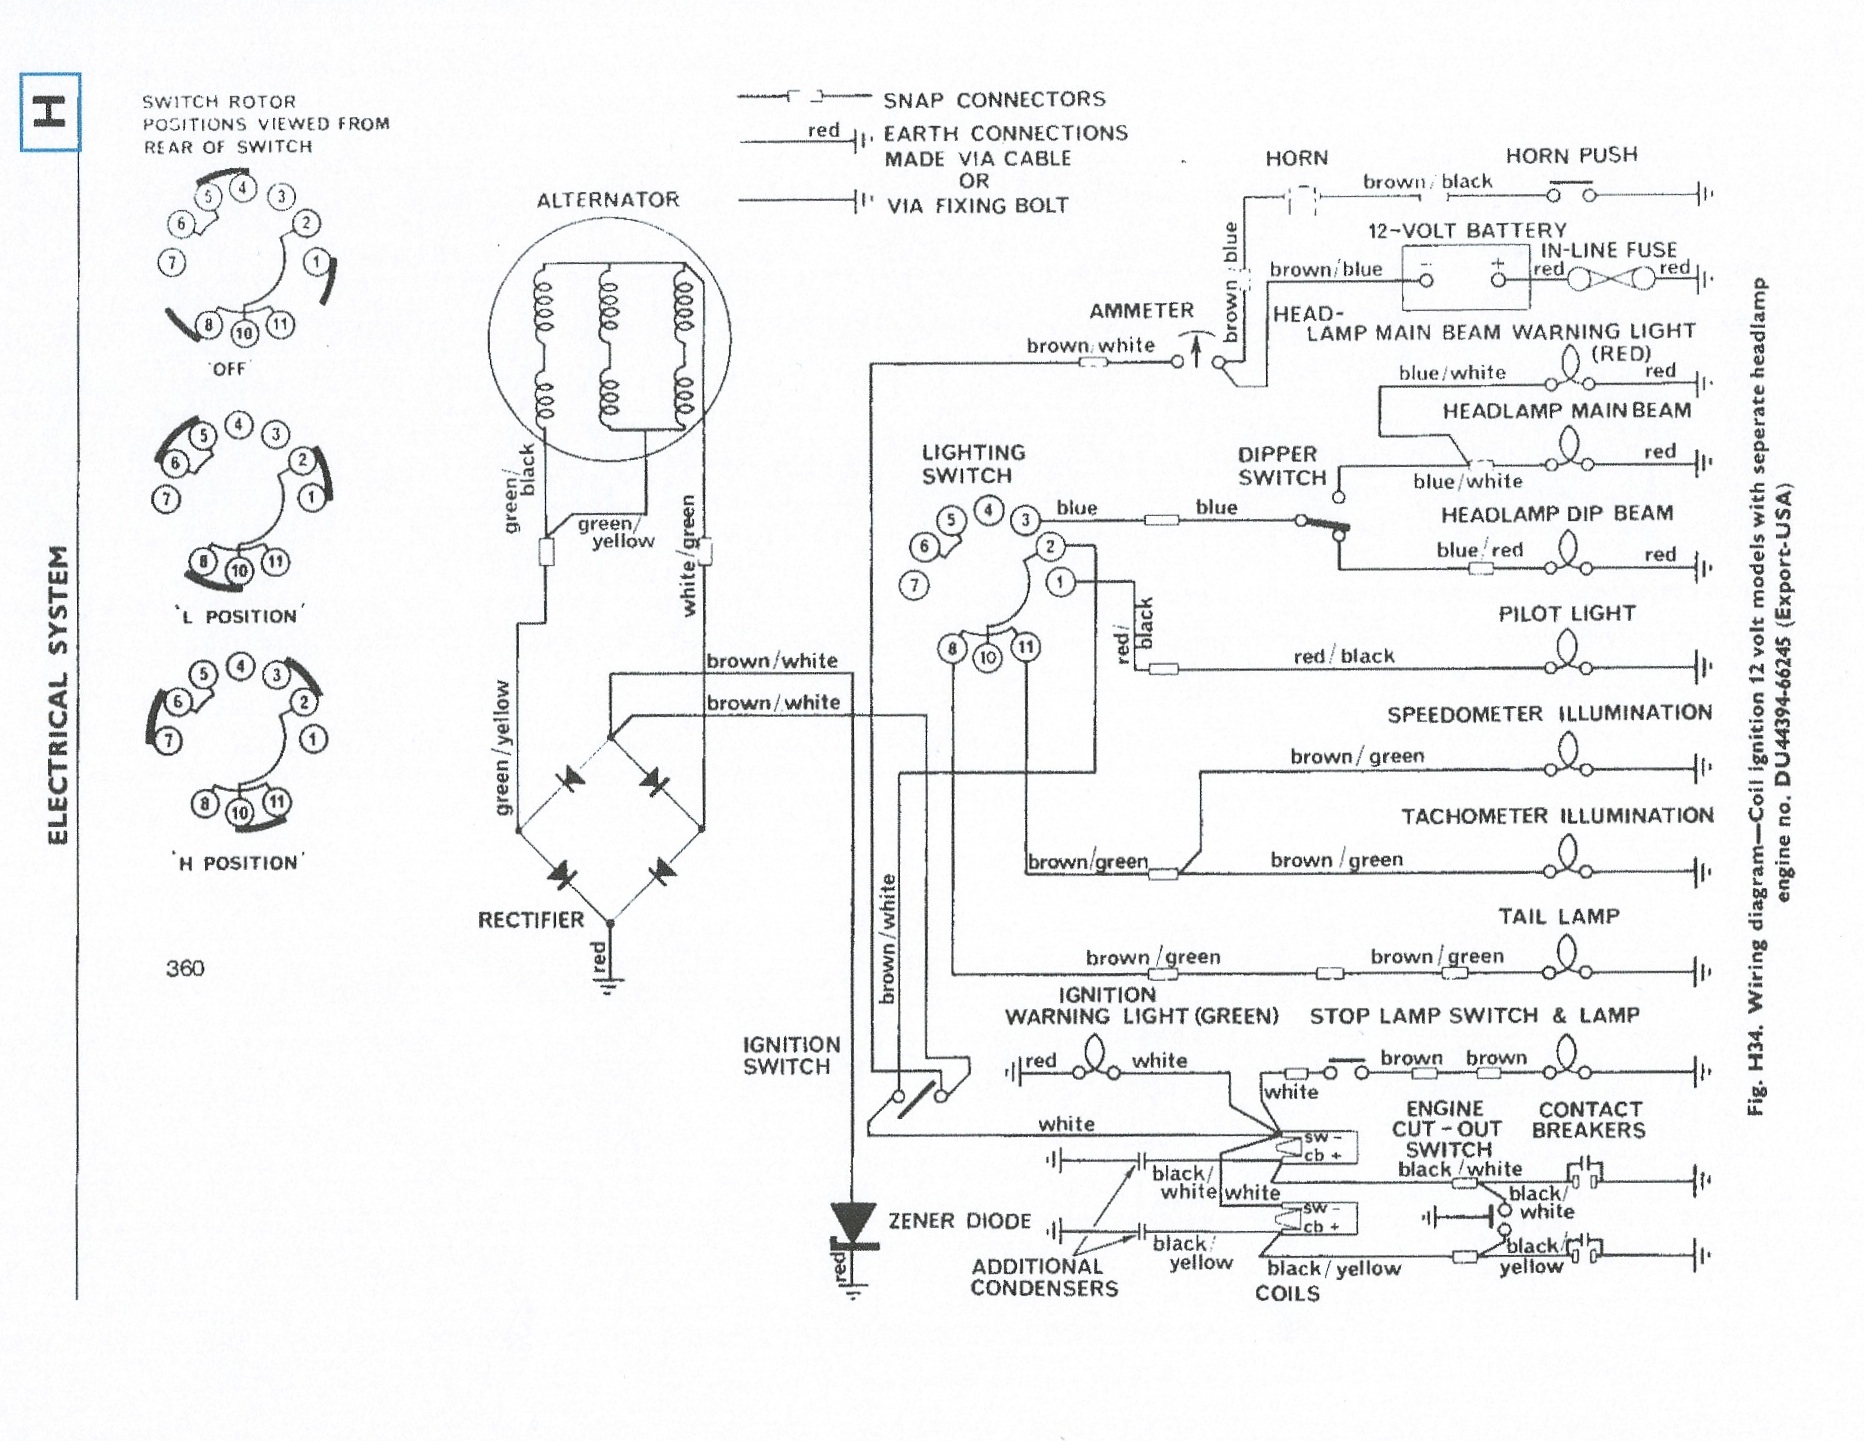 Attractive 1976 Tr6 Wiring Diagram Collection - Wiring Diagram Ideas ...